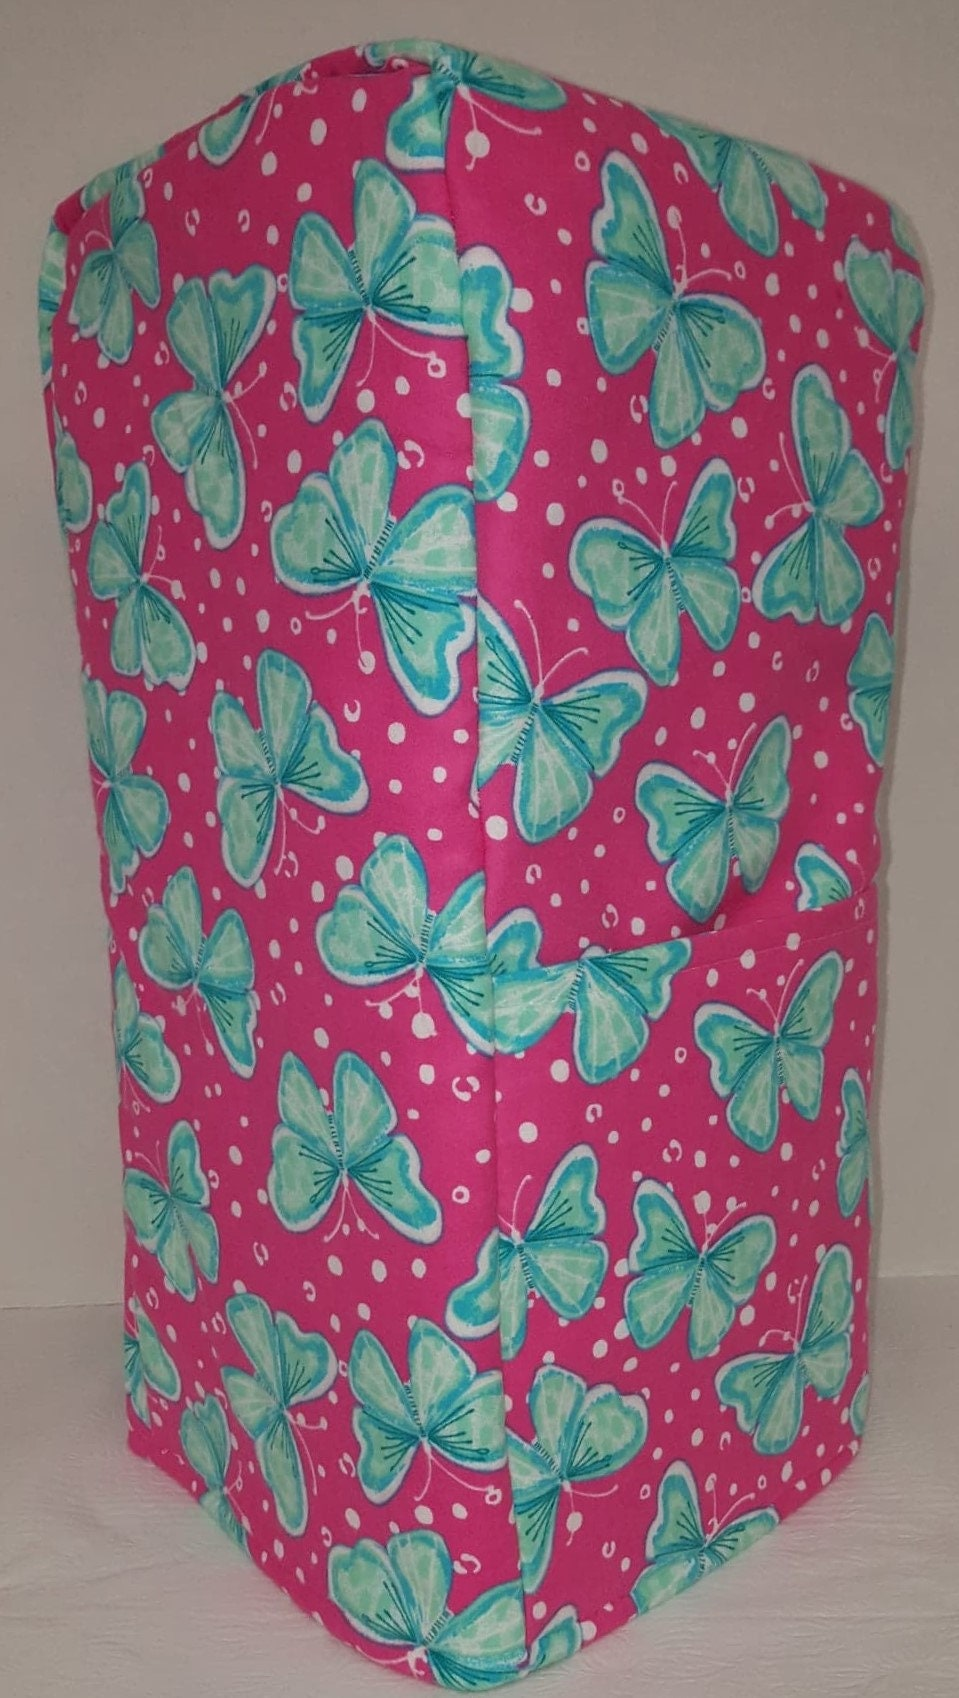 Teal Pink Butterflies Blender Cover w/Pockets